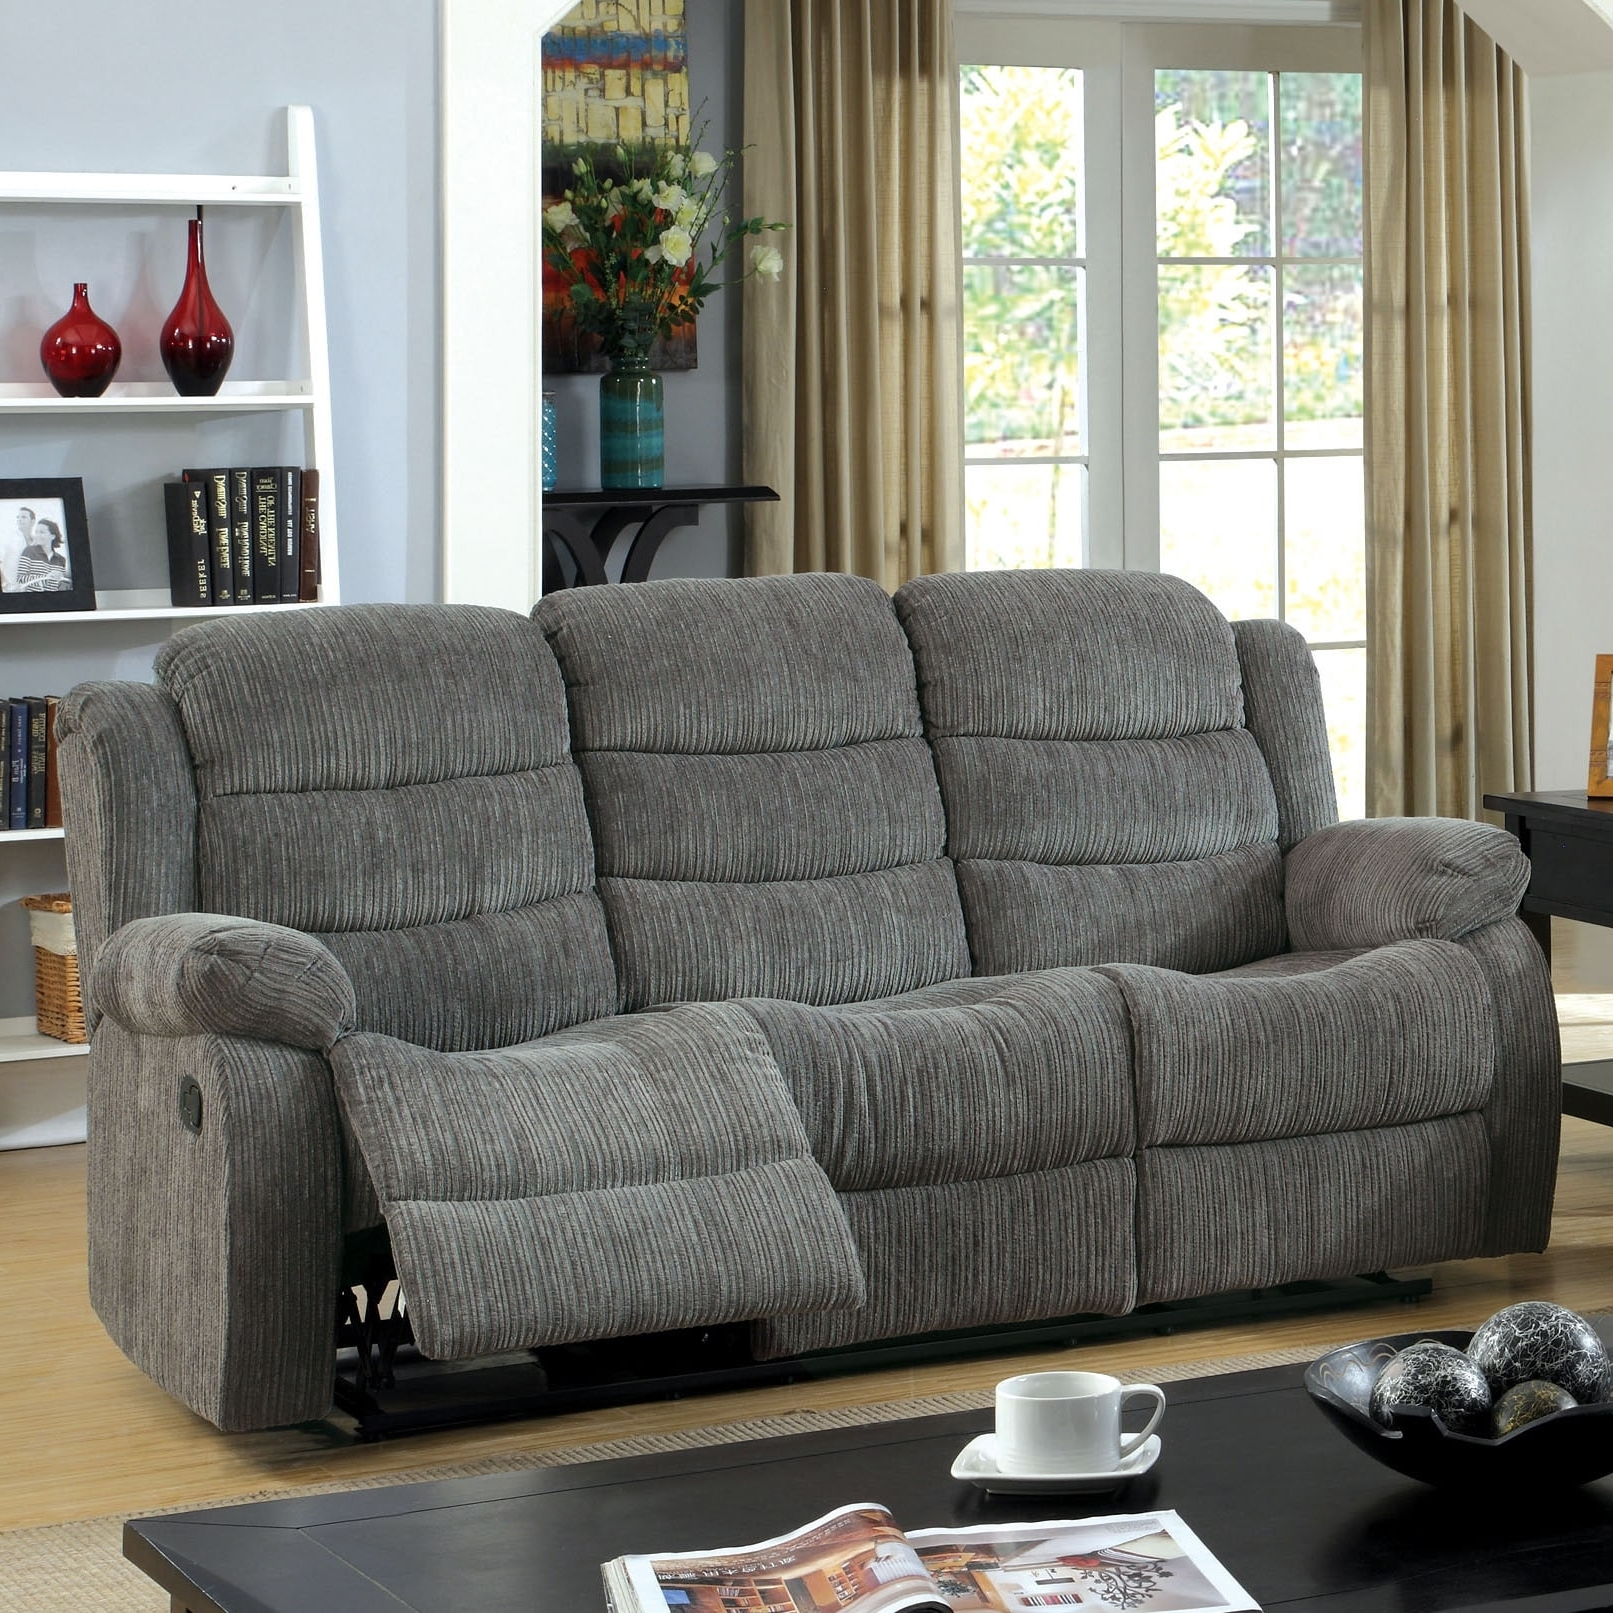 Recent American Furniture Warehouse Greensboro Nc Fresh Fresh Sectional Throughout Greensboro Nc Sectional Sofas (View 13 of 20)